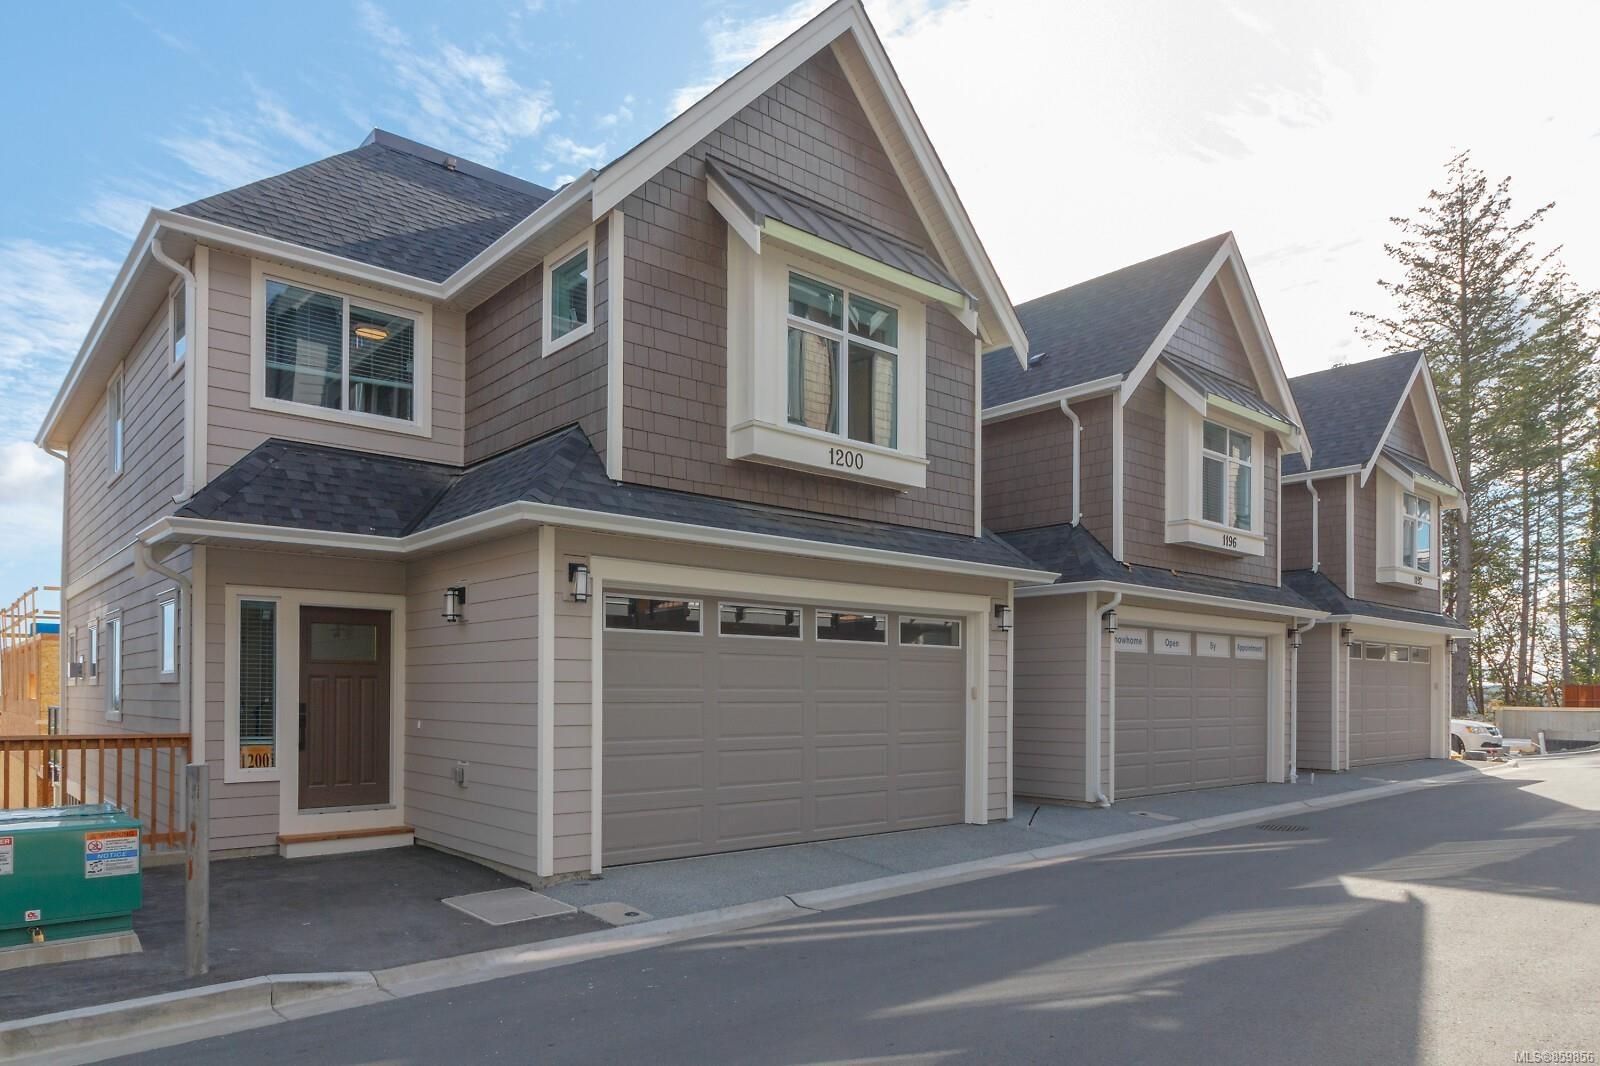 Main Photo: 1216 Moonstone Loop in : La Bear Mountain Row/Townhouse for sale (Langford)  : MLS®# 859856